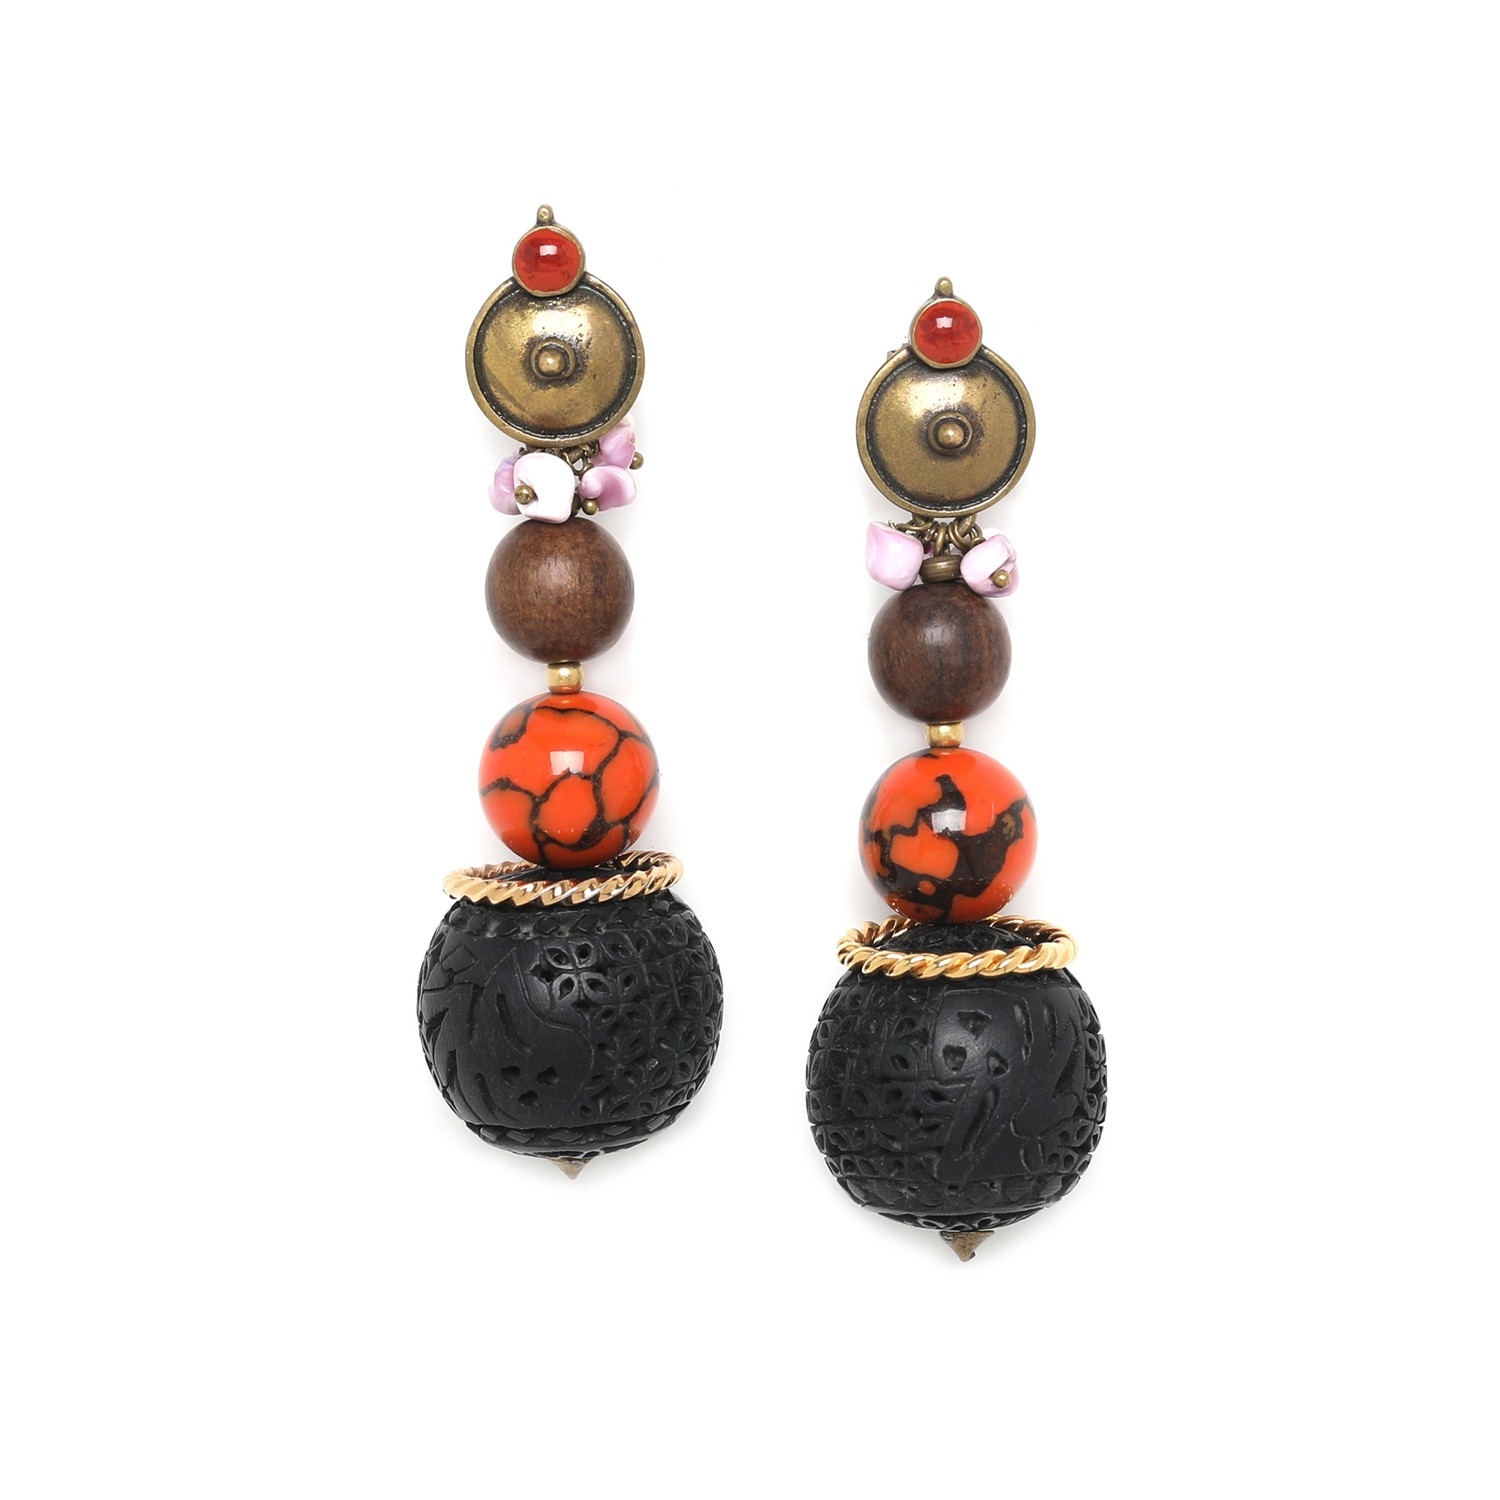 MELTING POT graduated beads big earrings